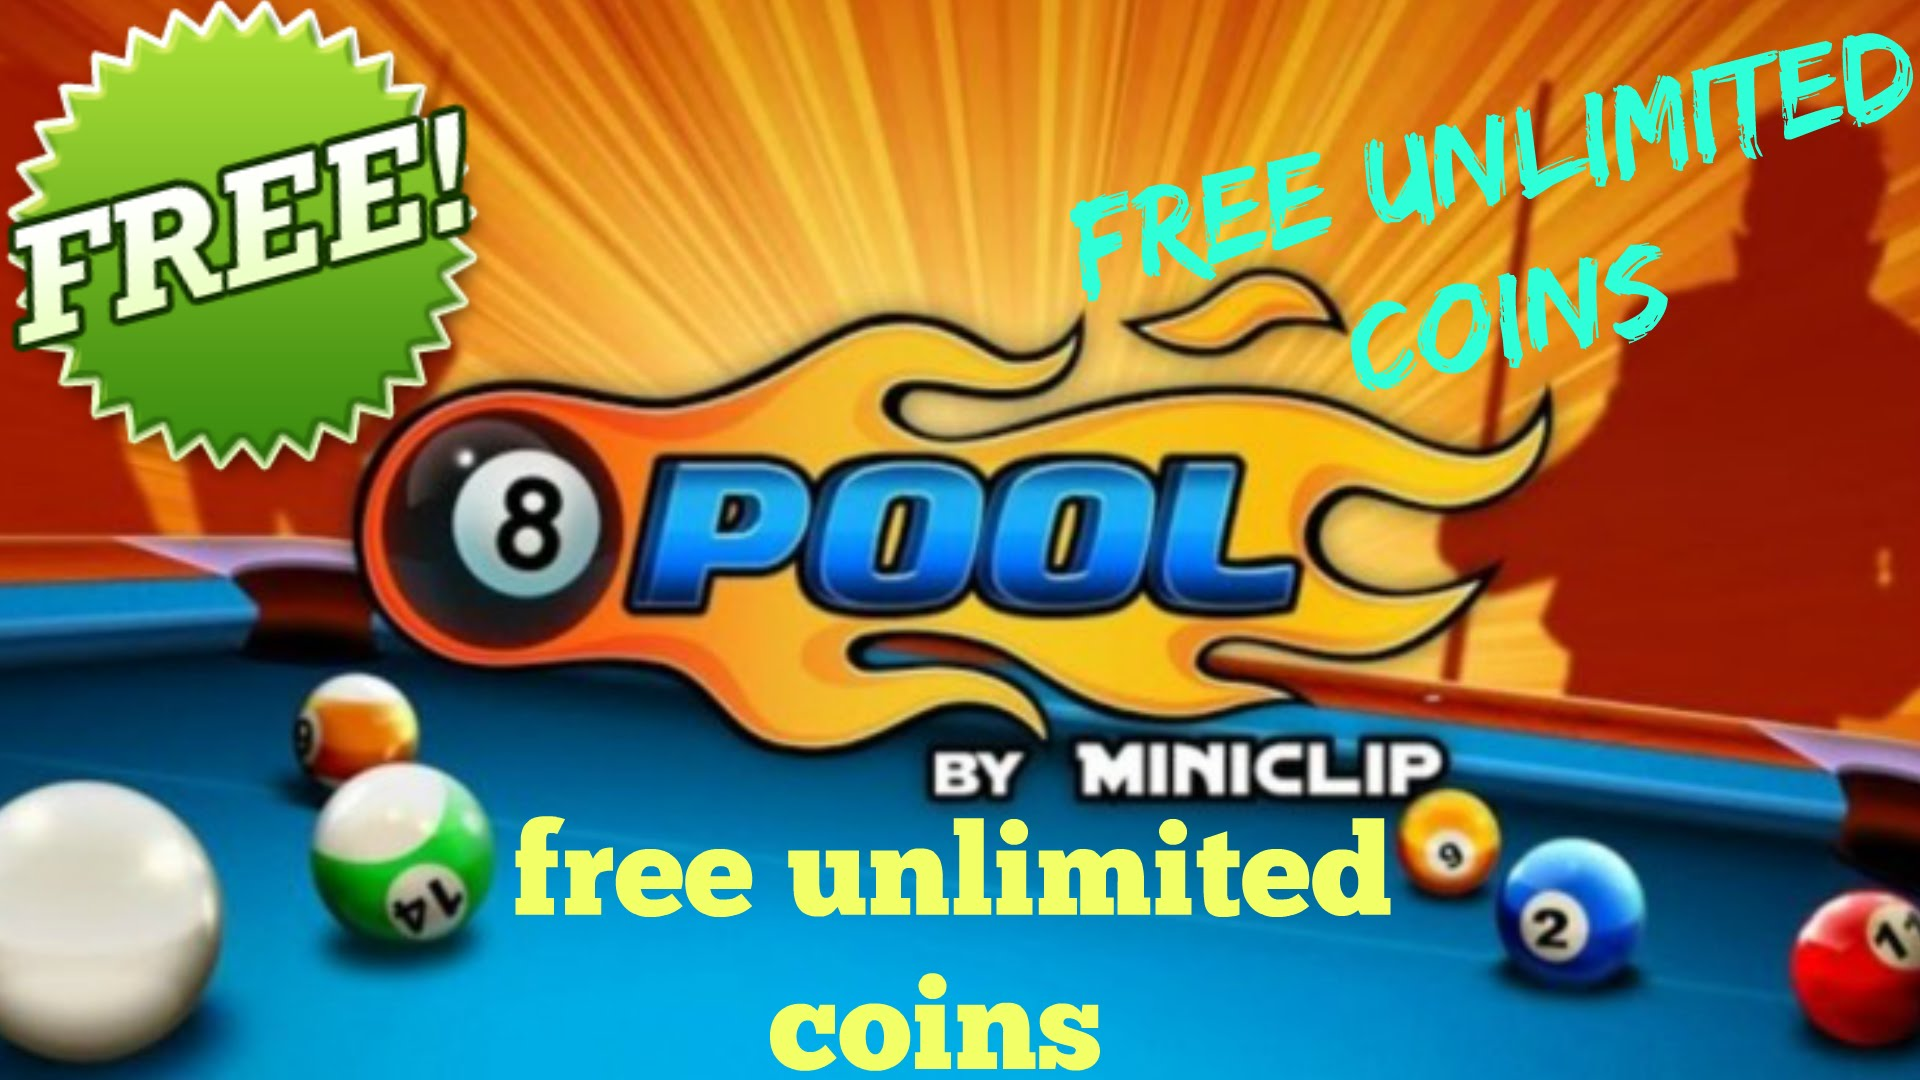 FROM FREEGEMSTOOL.COM 8 BALL POOL | GET Cash and Coins FOR UNLIMITED RESOURCES